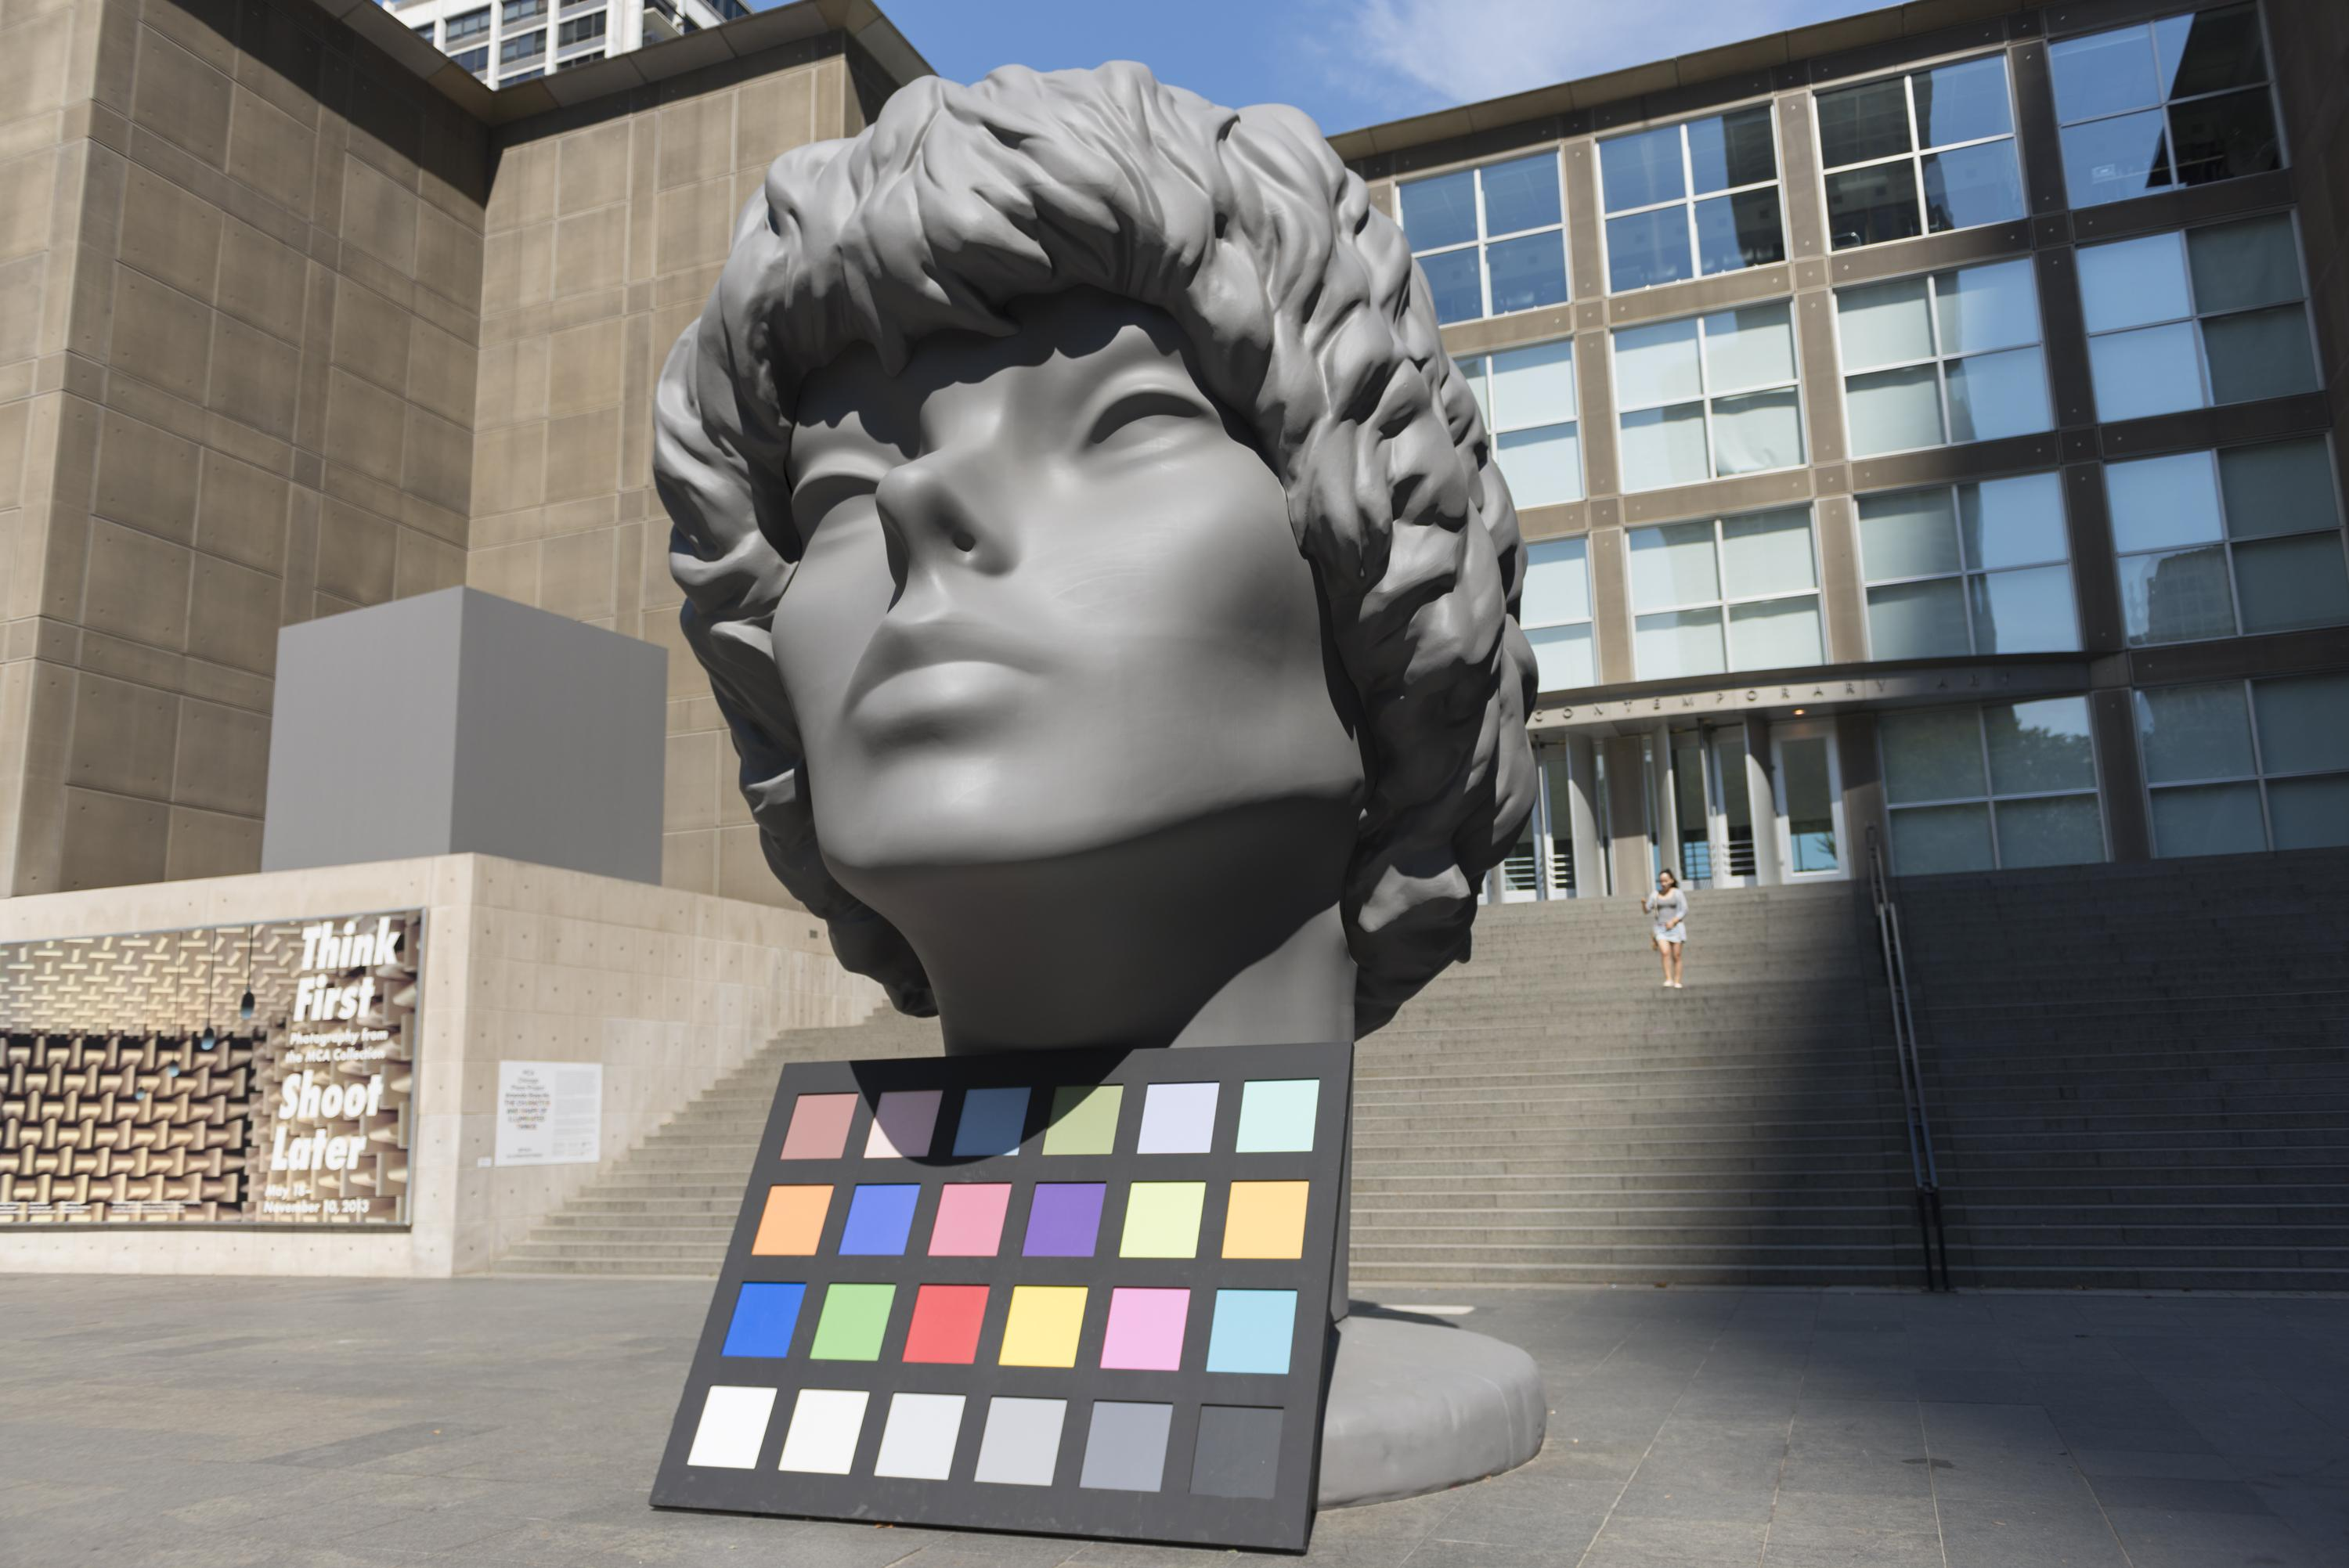 A huge sculpture of person's head is displayed along with a color palette in front of the MCA.